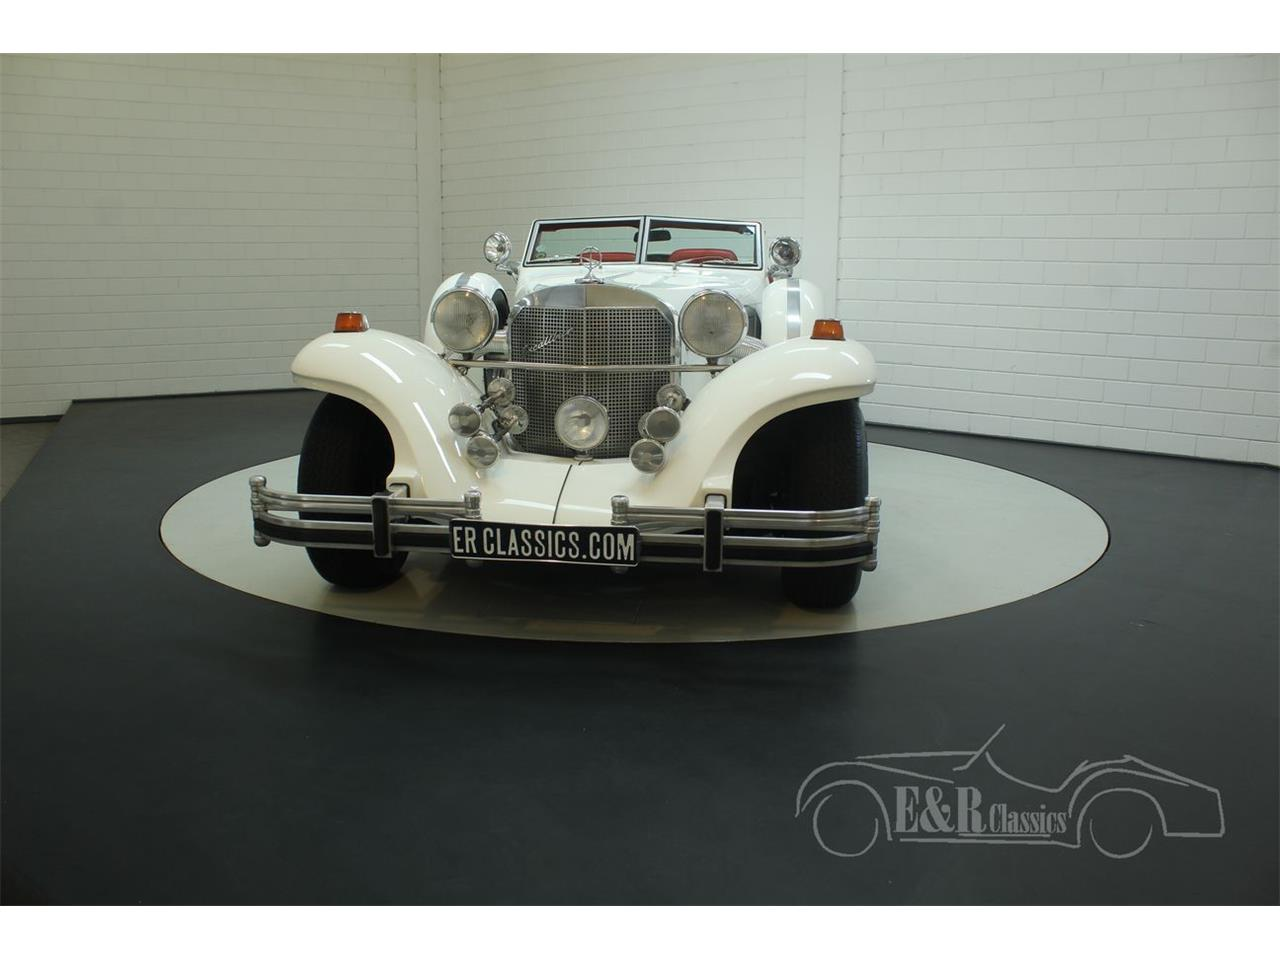 Large Picture of '82 Series IV Phaeton located in Waalwijk noord brabant - $78,450.00 - Q3GF